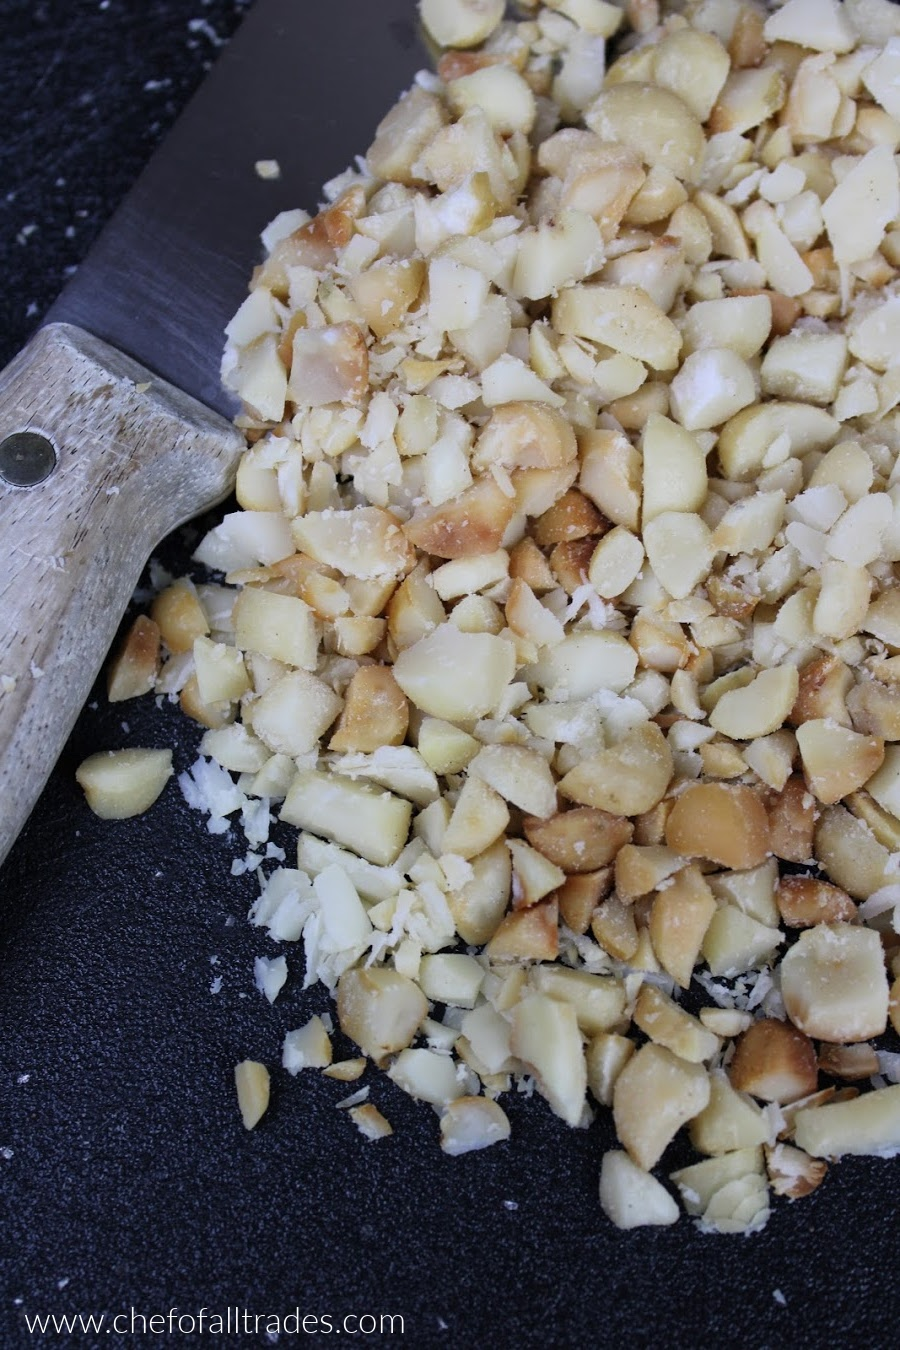 chopped macadamia nuts on a cutting board